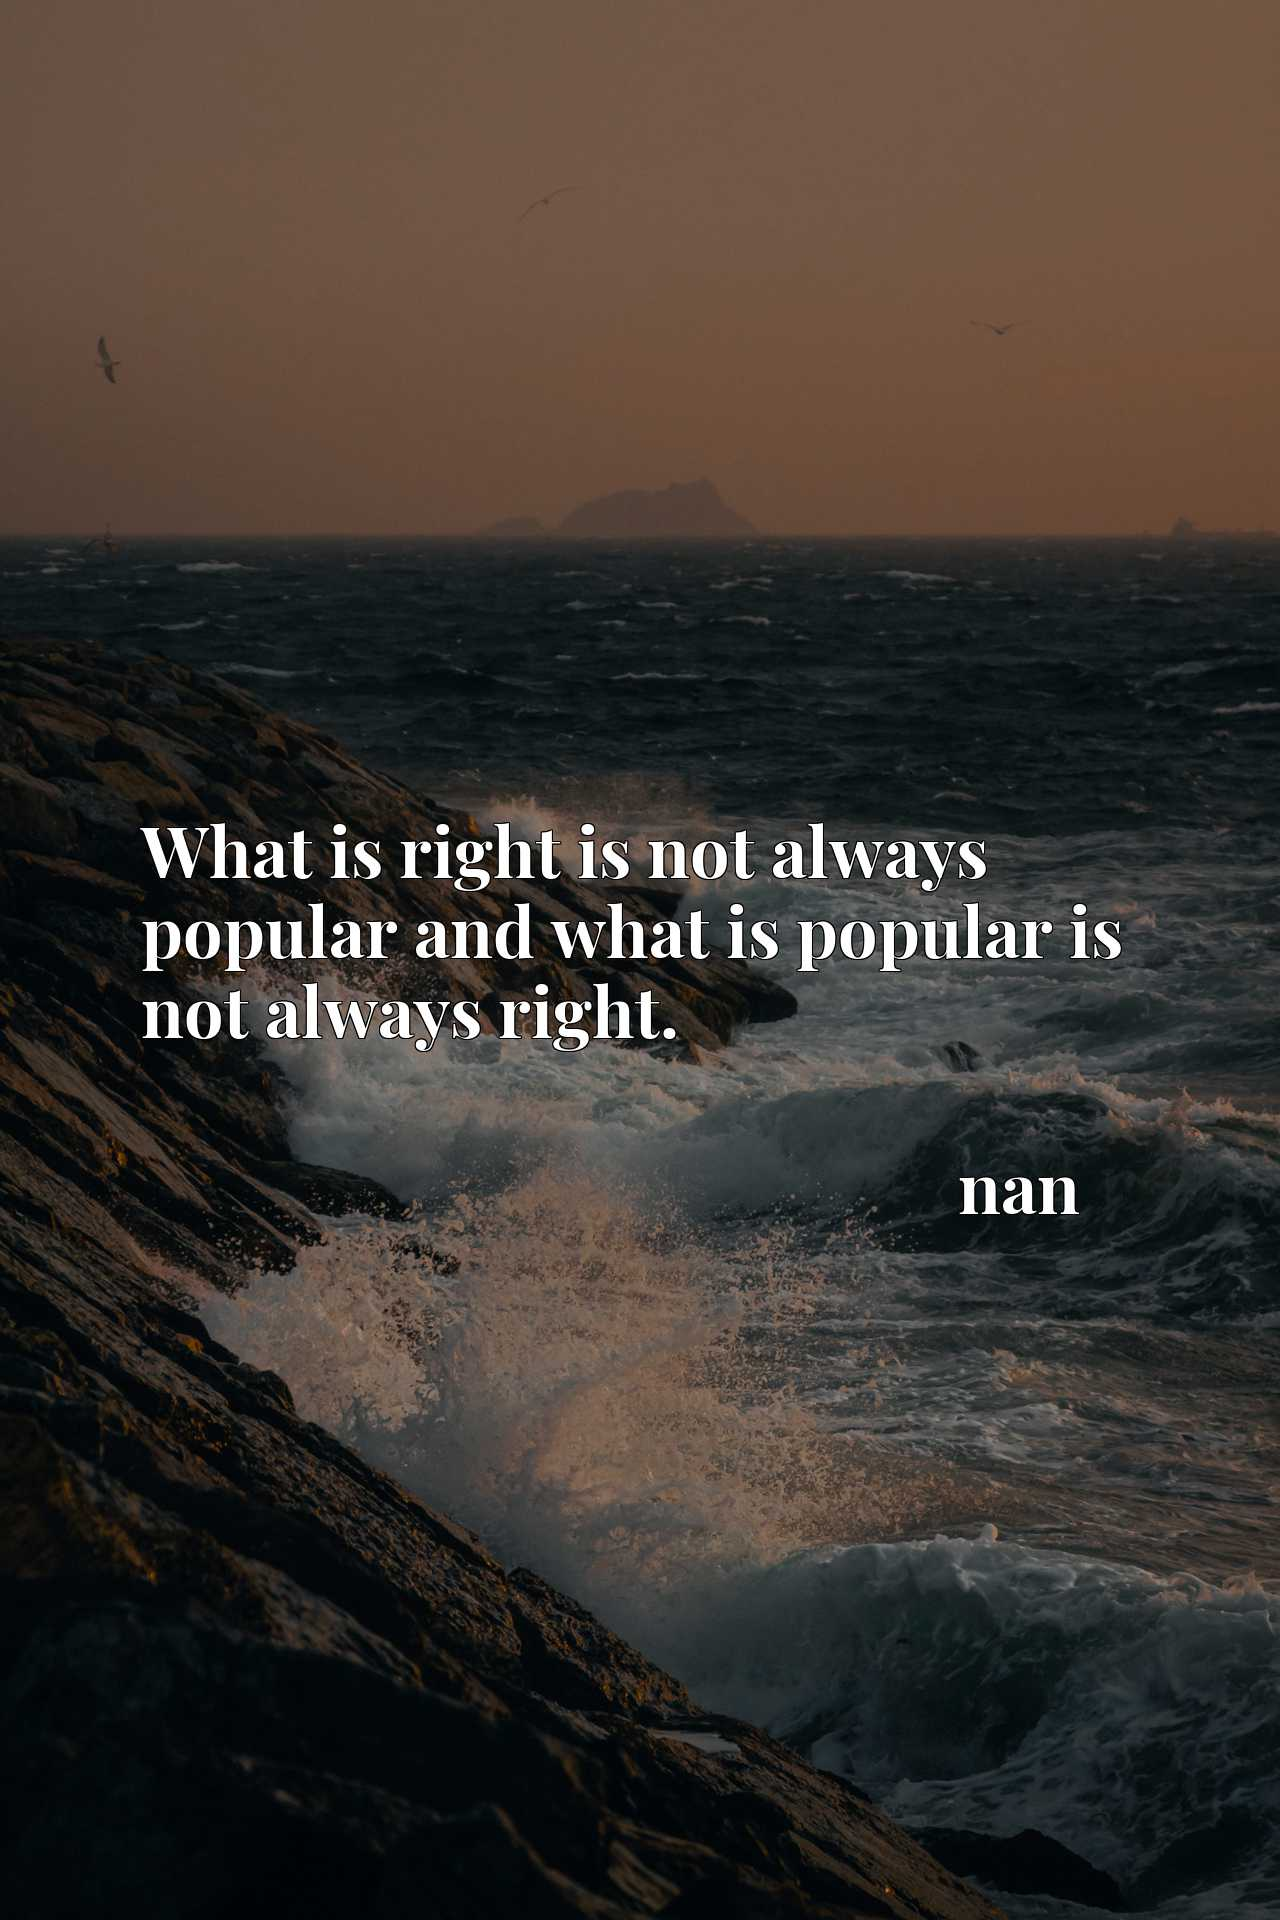 What is right is not always popular and what is popular is not always right.